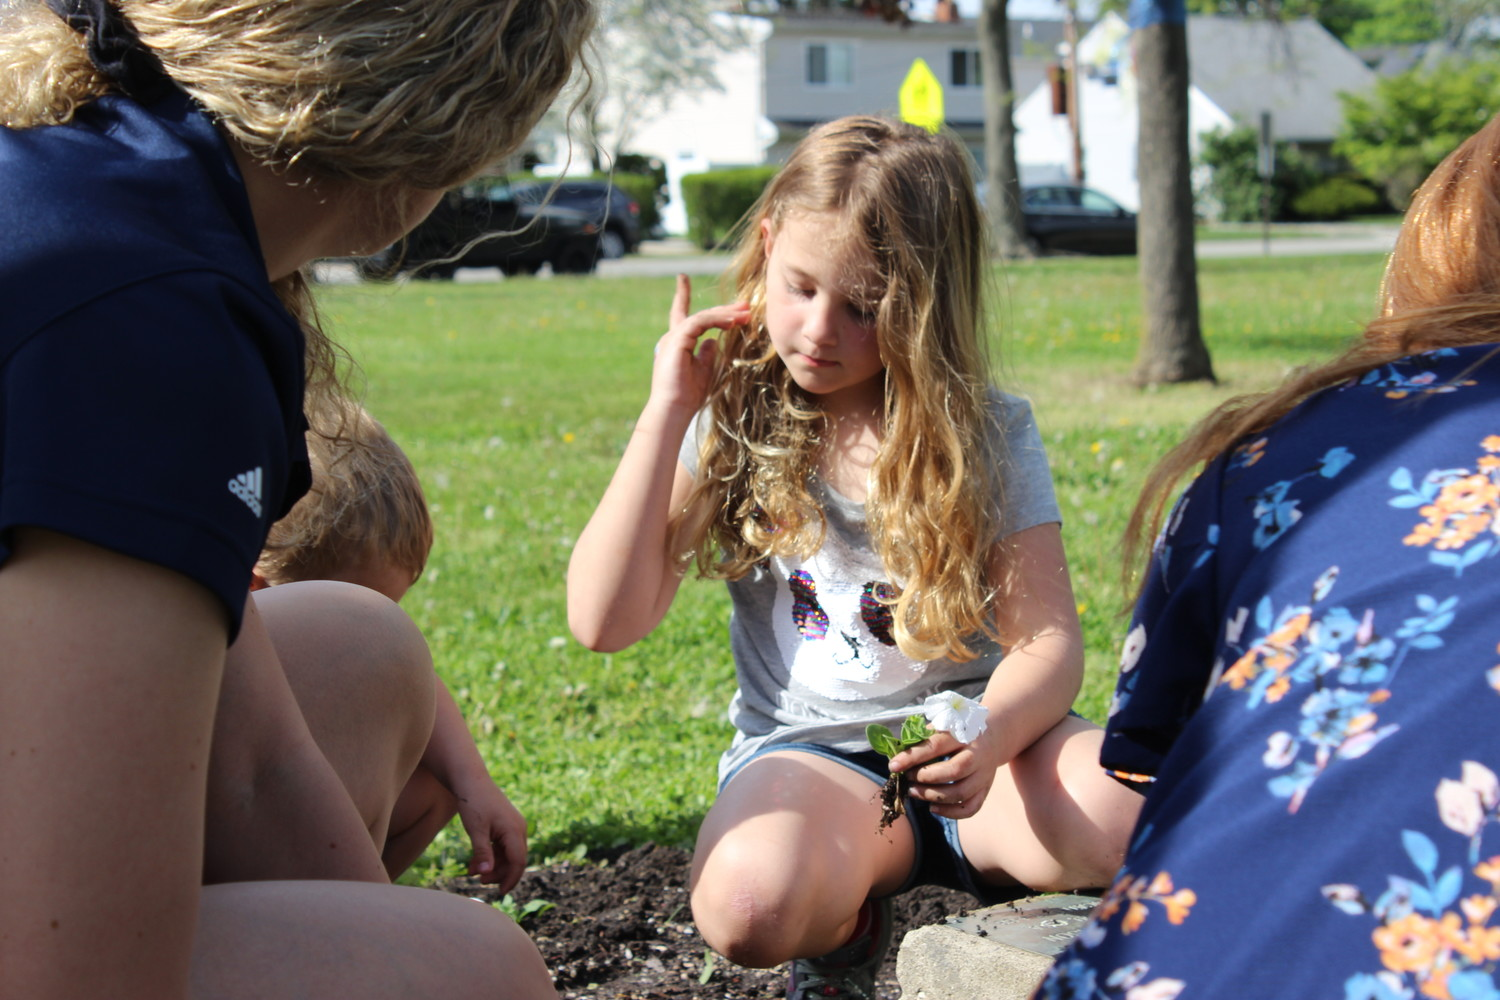 Ella Gorlasky, a second-grade student at Bowling Green Elementary School, marveled at white spring flowers and she planted them in the dirt.